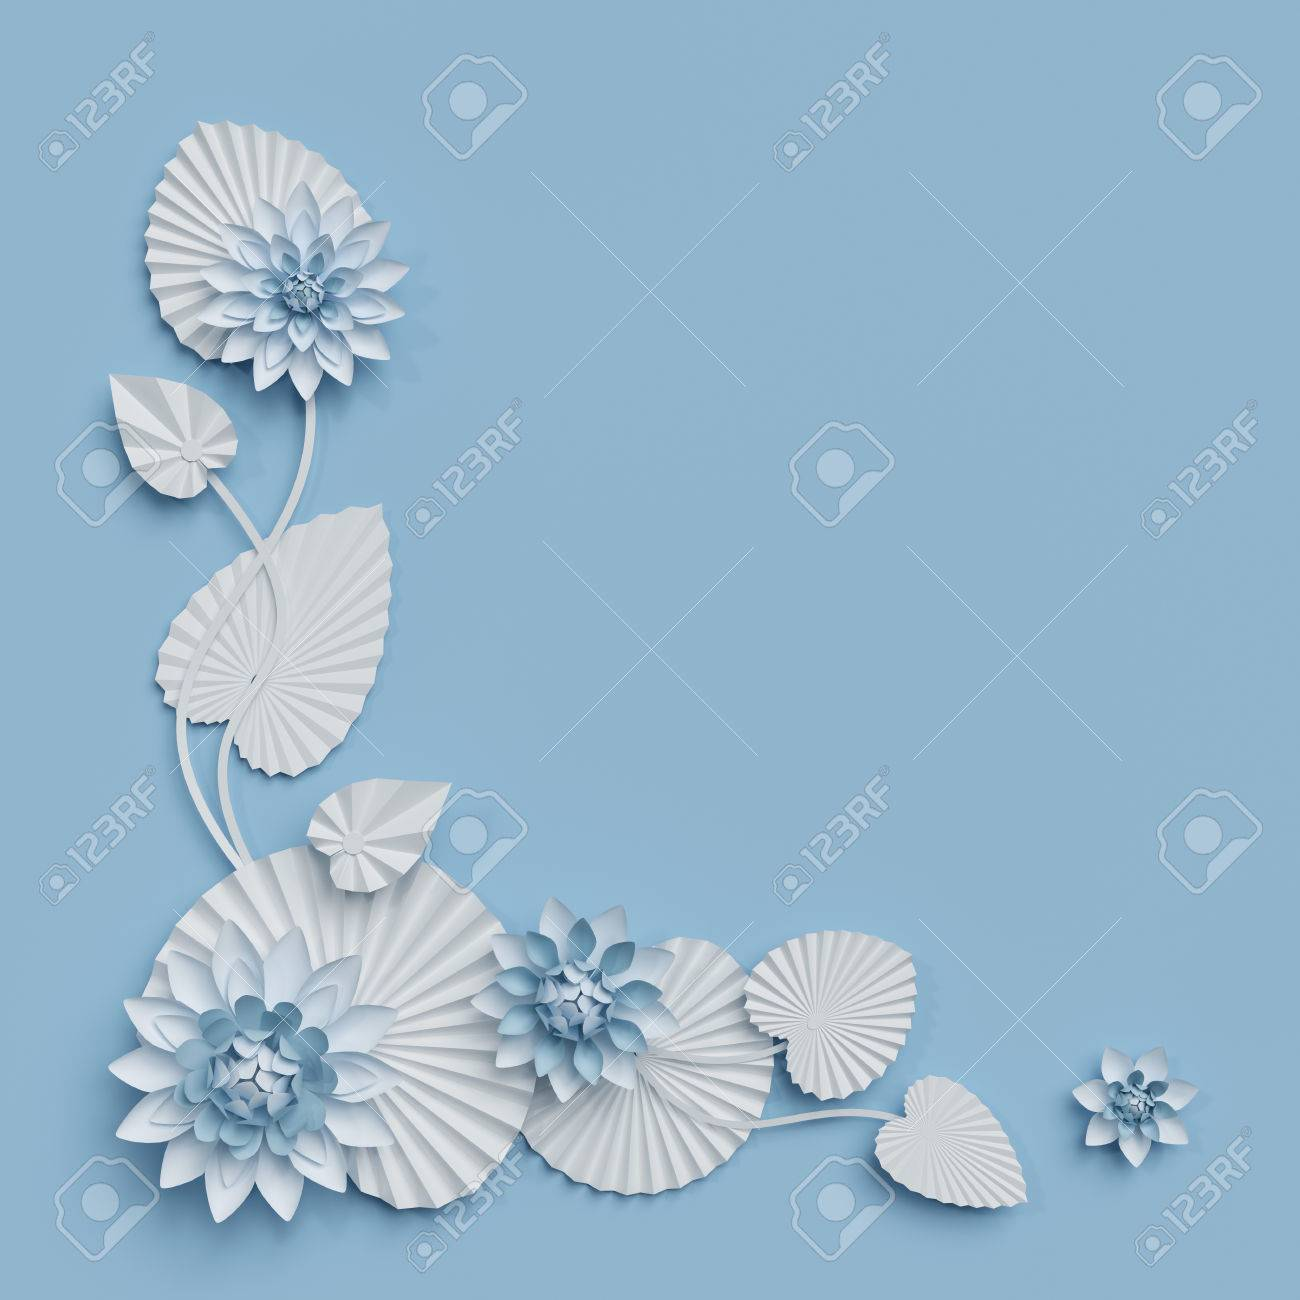 3d Render Paper Lotus Flowers Blue Wall Decoration Border White Water Lily